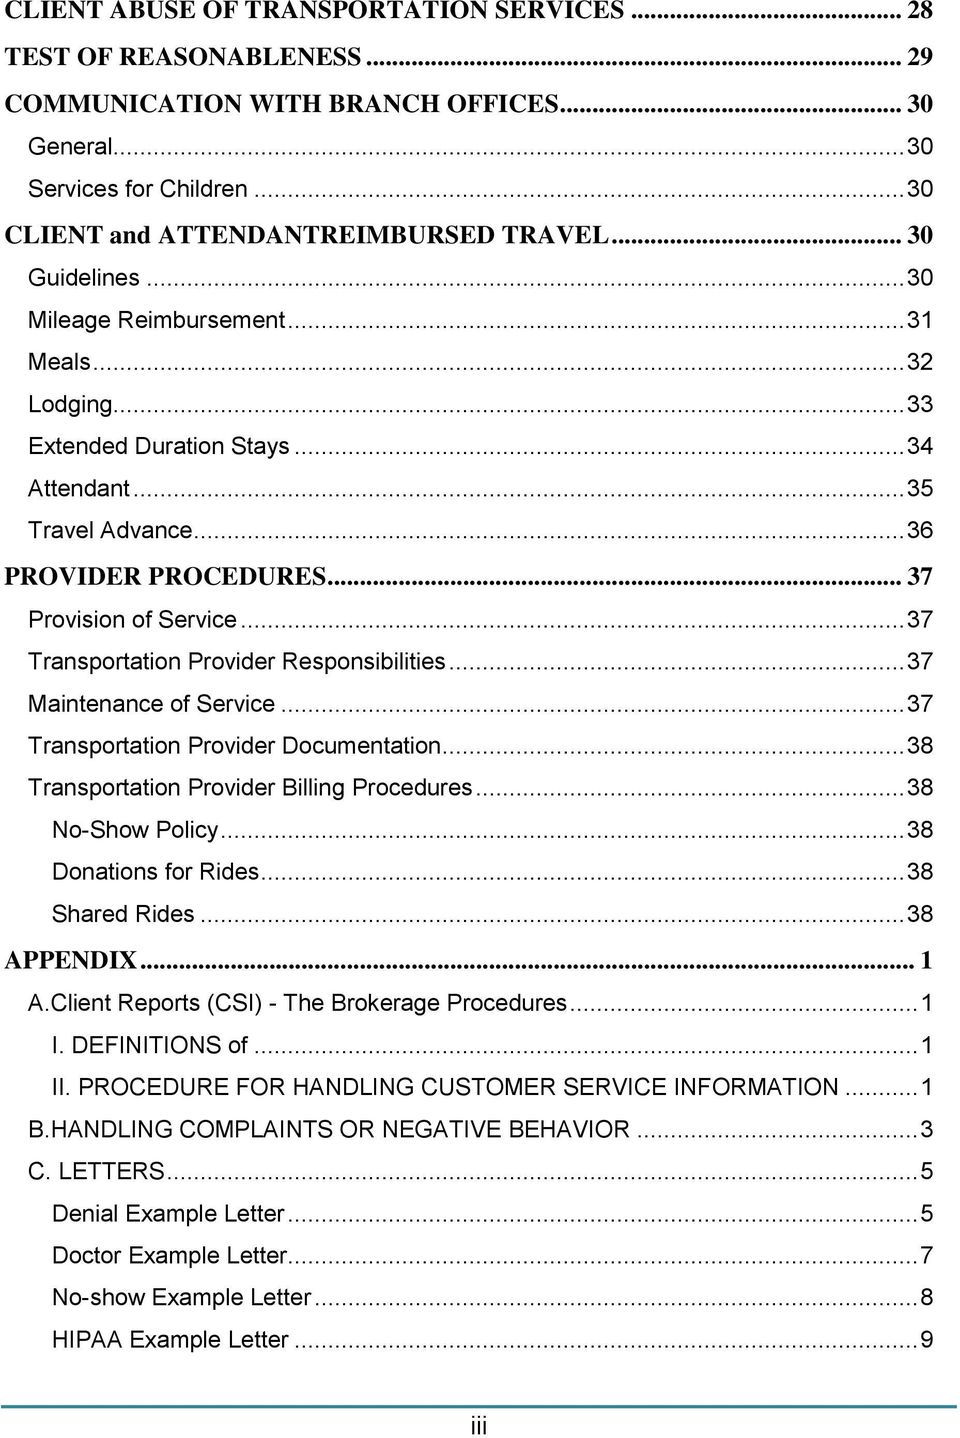 .. 37 Transportation Provider Responsibilities... 37 Maintenance of Service... 37 Transportation Provider Documentation... 38 Transportation Provider Billing Procedures... 38 No-Show Policy.